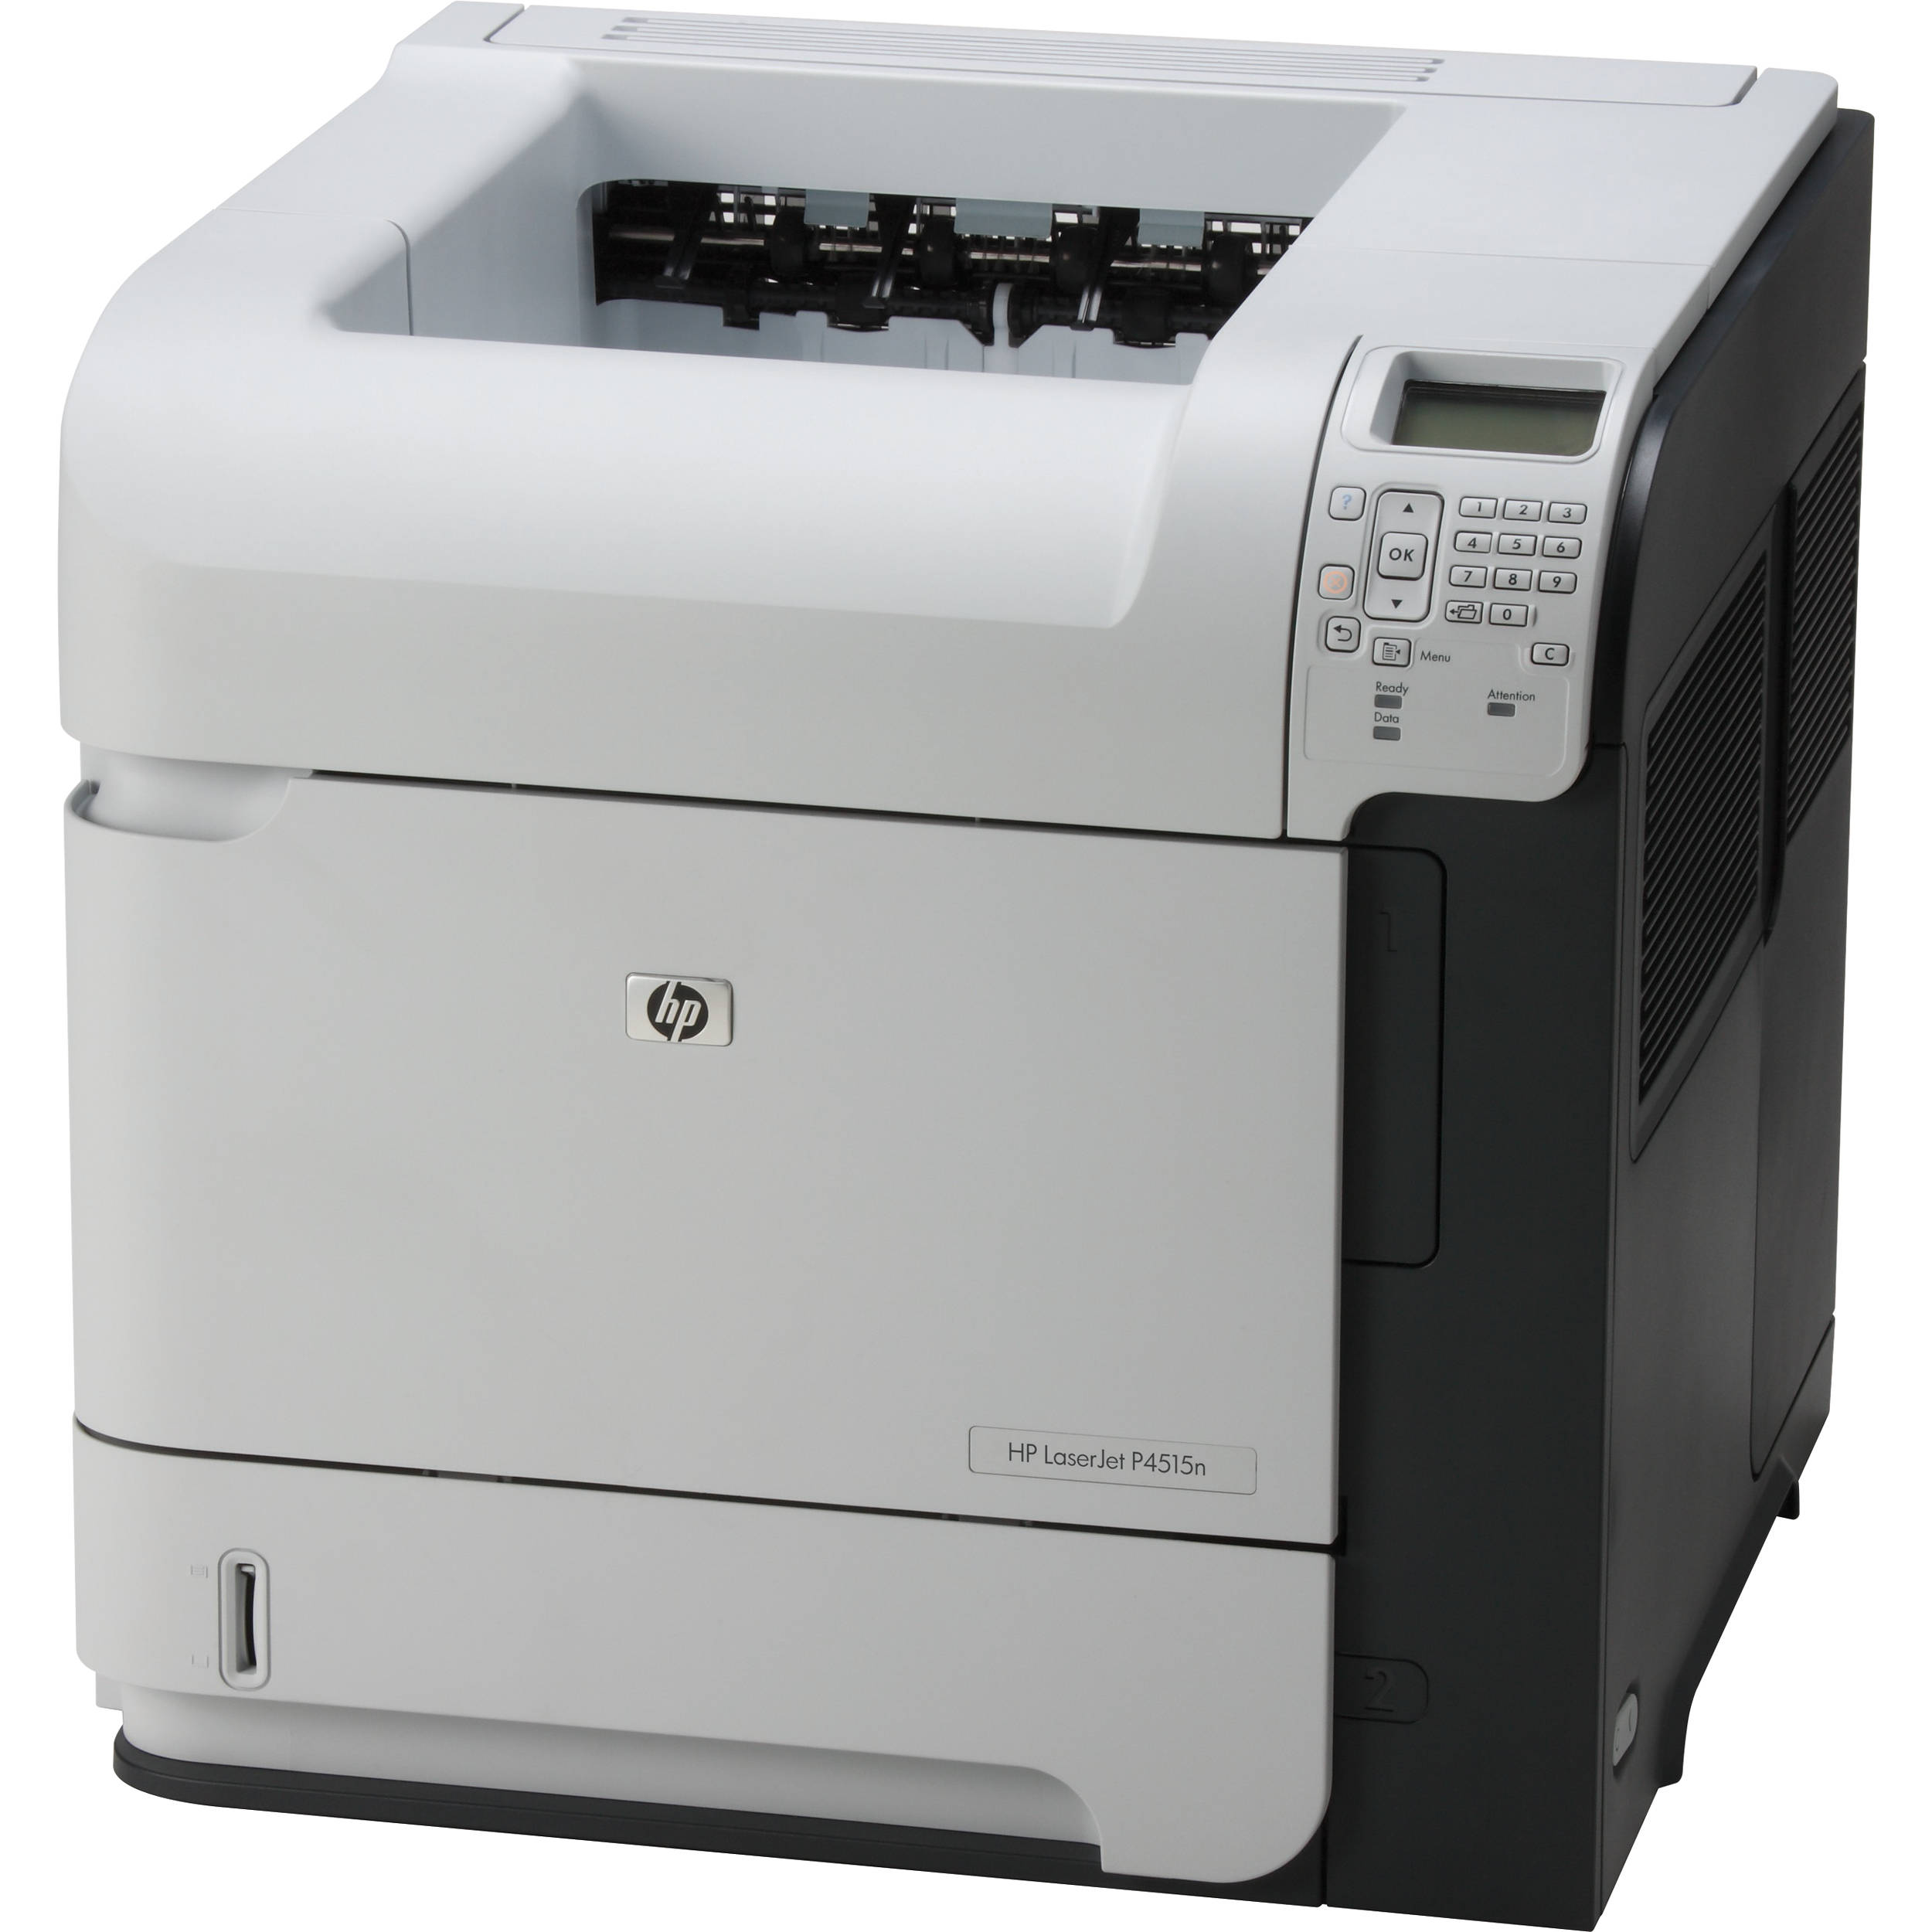 how to create new hp 8720 account for new computer